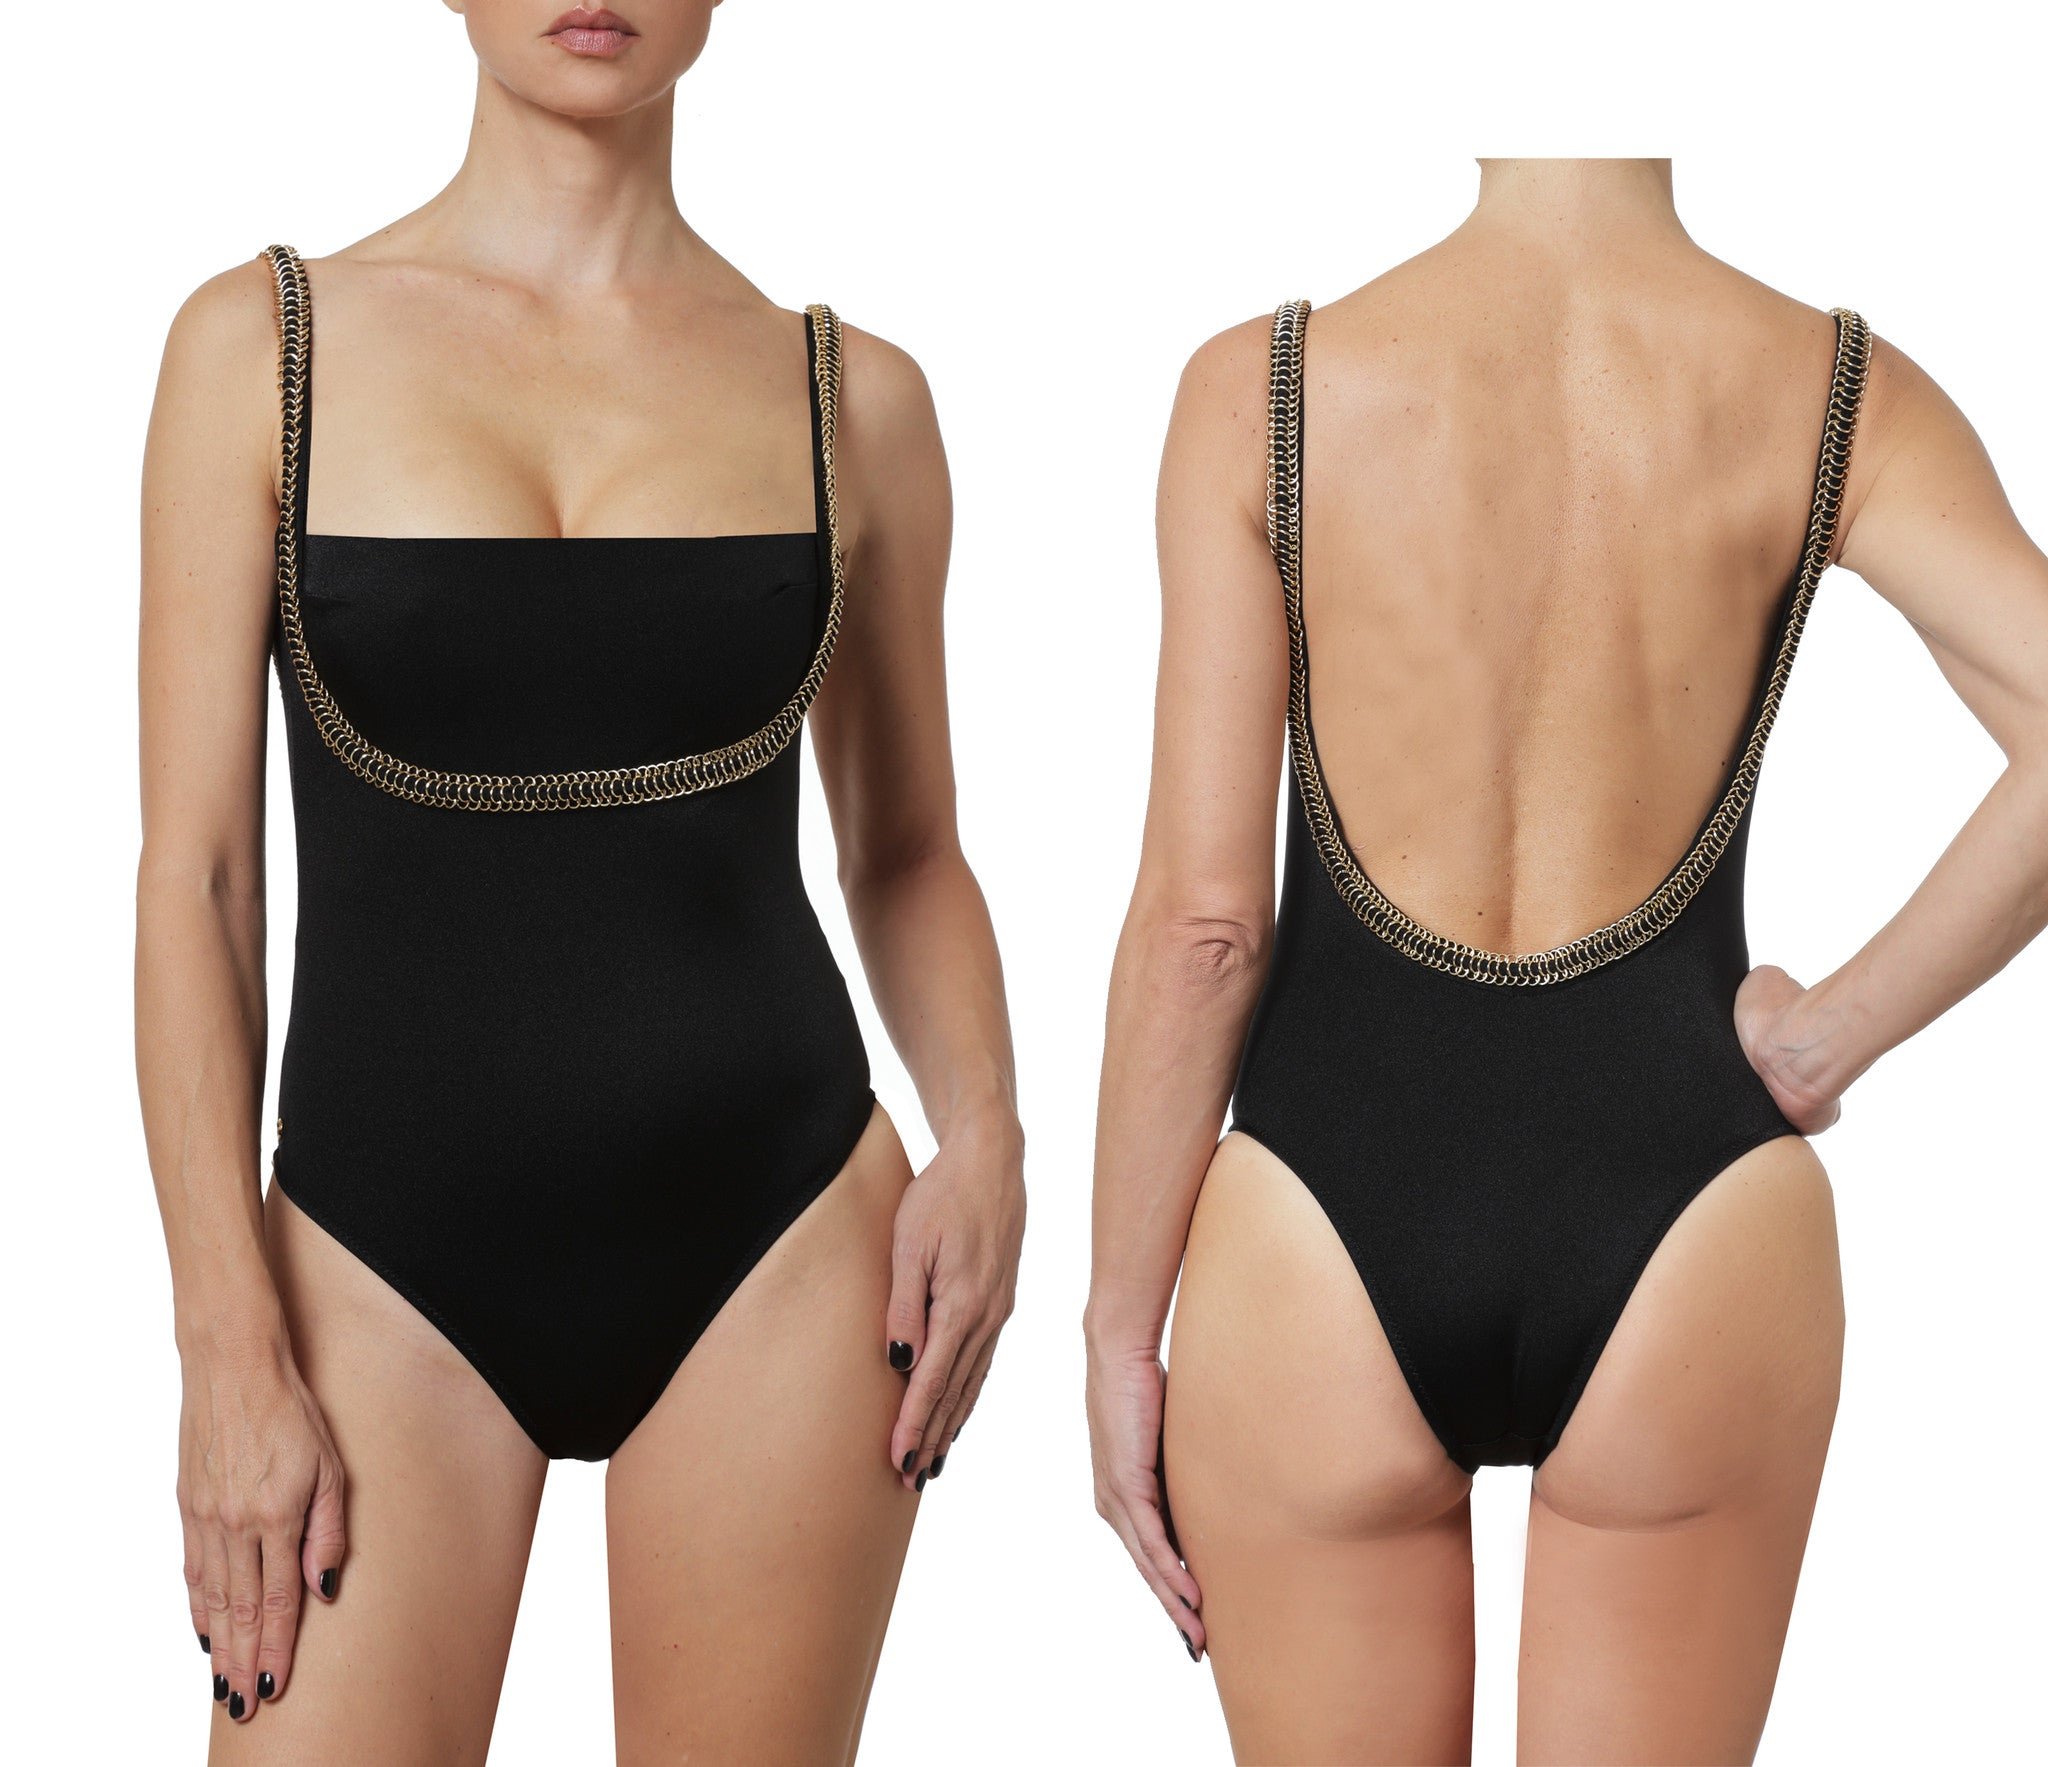 Aphrodite swimsuit designed by alexandra koumba